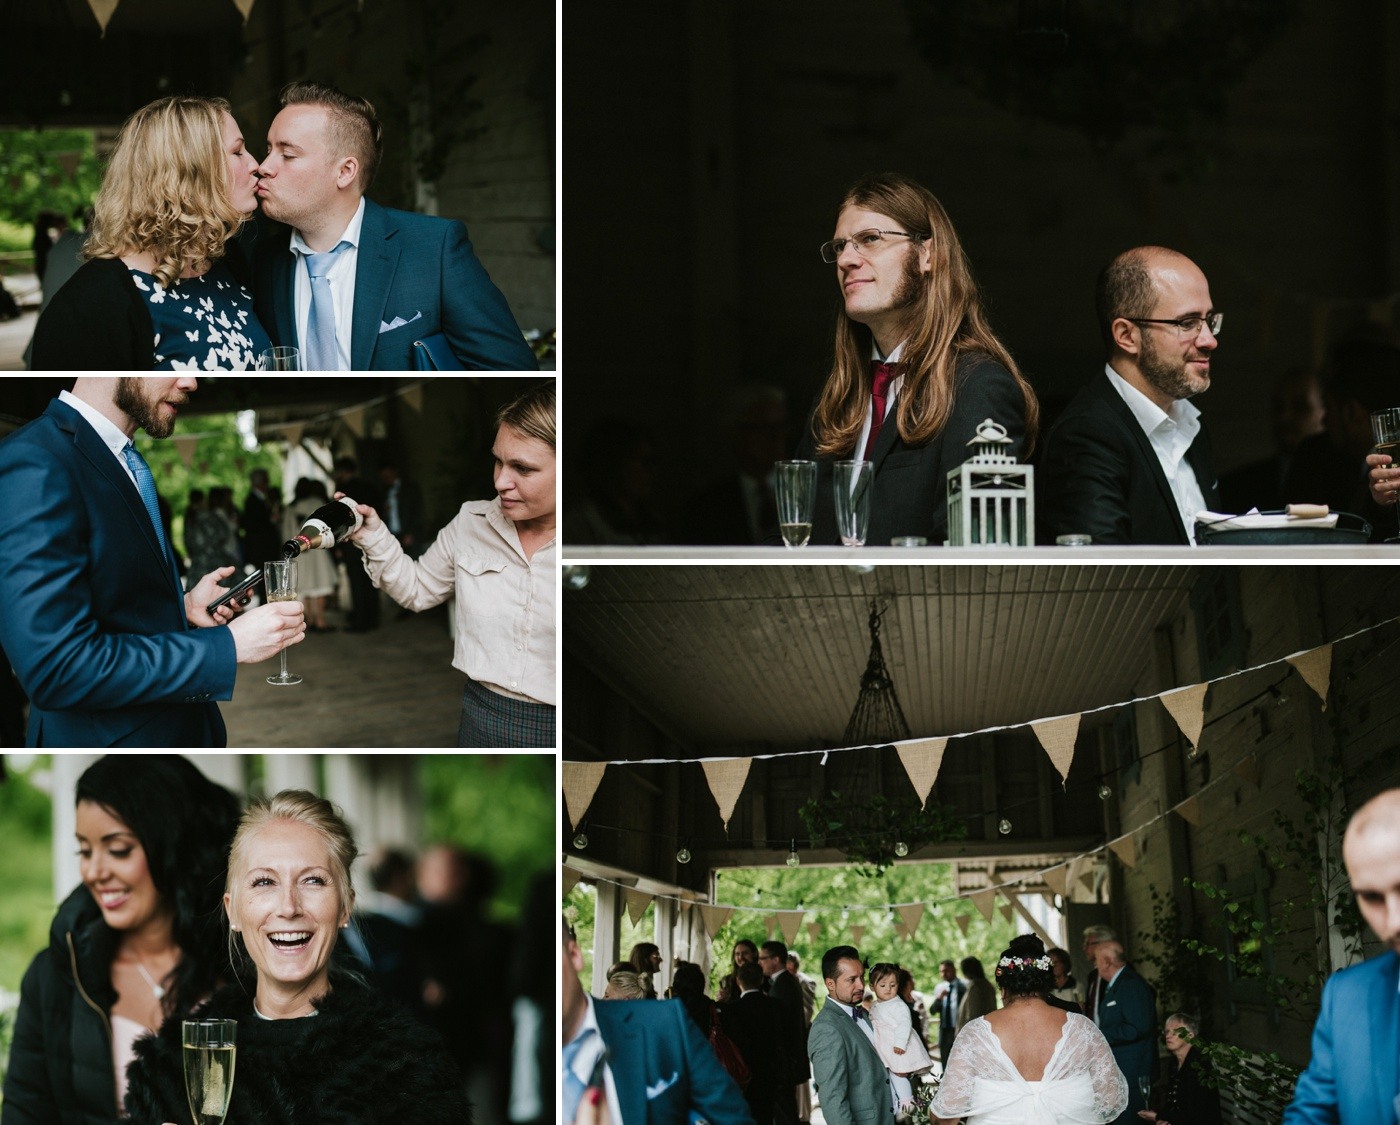 Torbjorn&Paula_Swedish-countryside-rustic-relaxed-wedding_Melbourne-Wedding-Photography_80